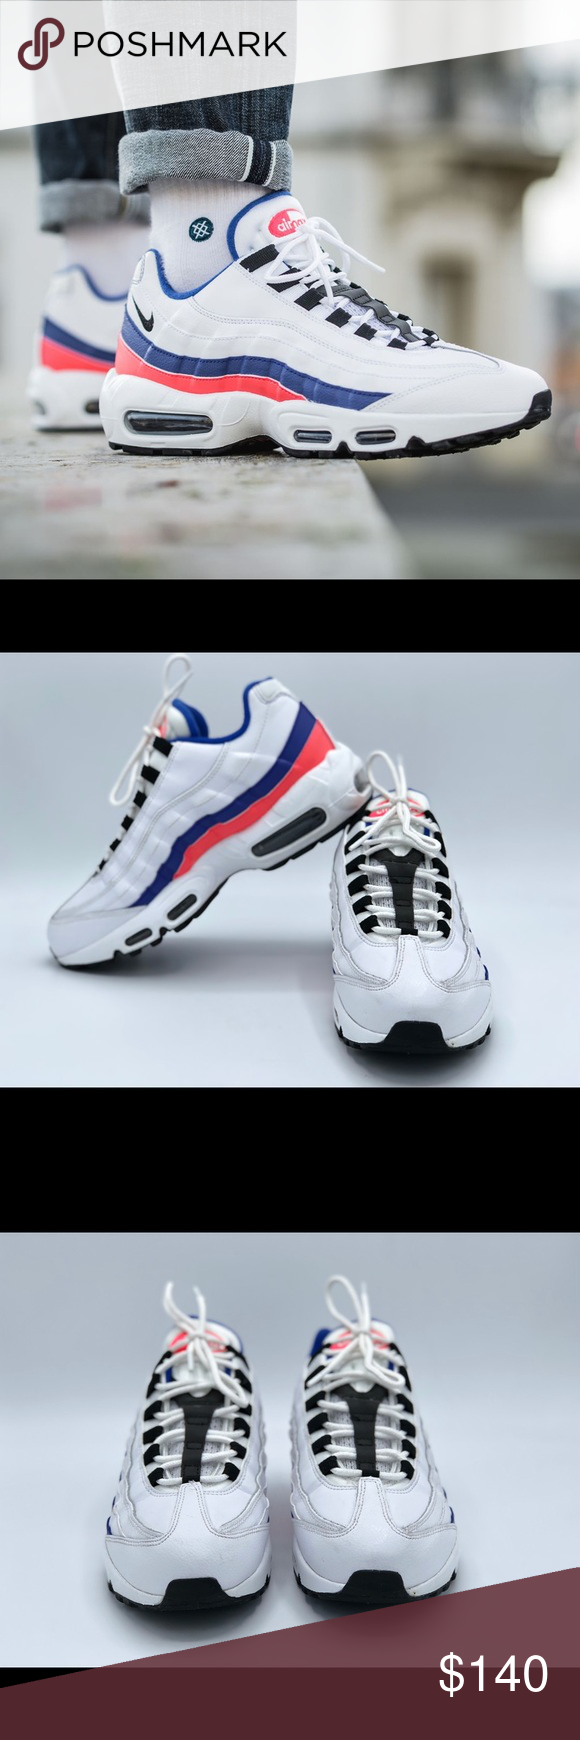 a2a4ba487d03 Nike Air Max 95 Essential Men s Shoes These are almost new Nike Air Max 95  Essential Men s Shoes No Box. All the pictures are of real shoe pictures  except ...